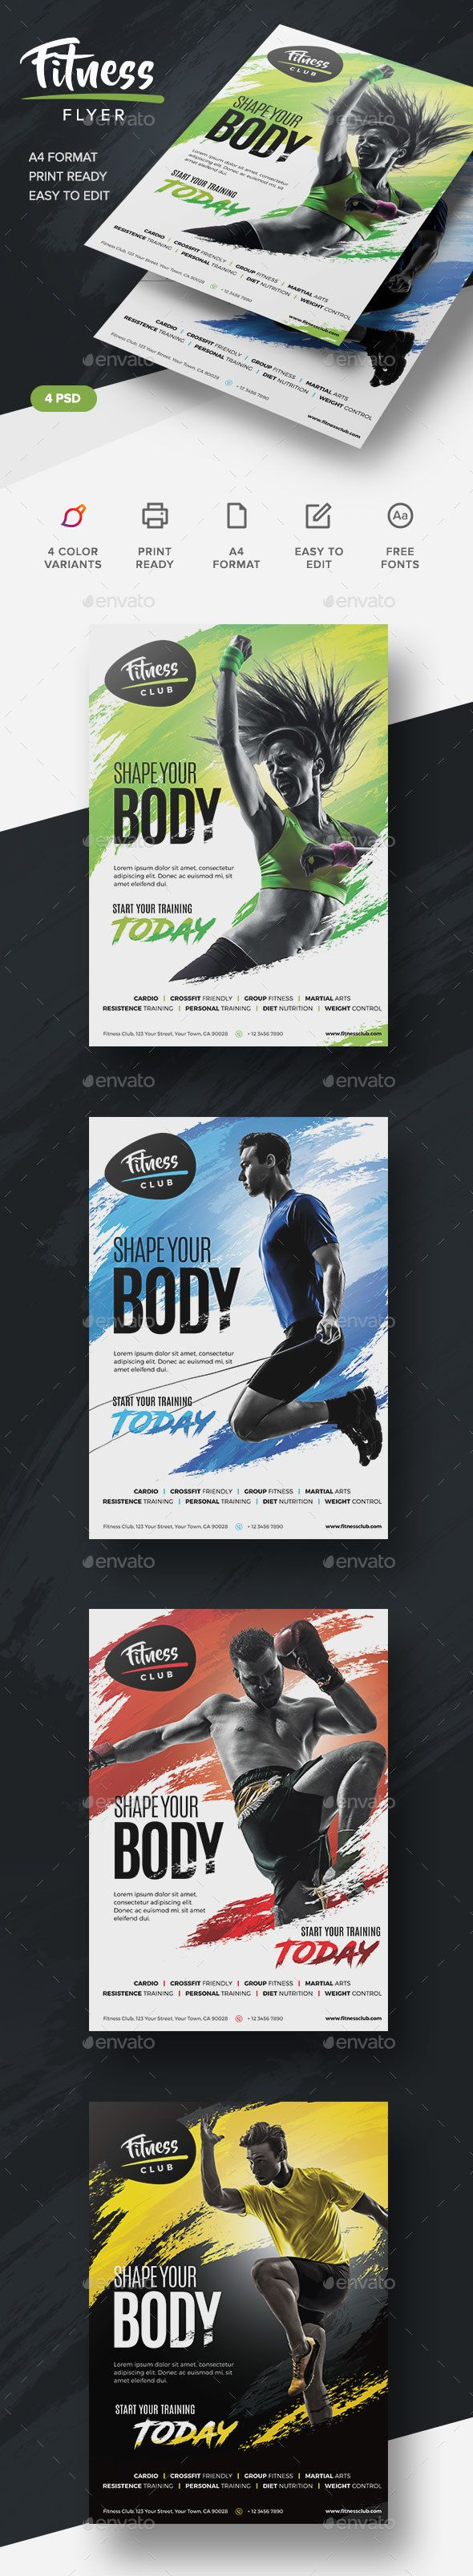 Fitness Flyer Design Template - Corporate Flyers Design Template PSD. Download here: https://graphicriver.net/item/fitness-flyer/19358828?ref=yinkira